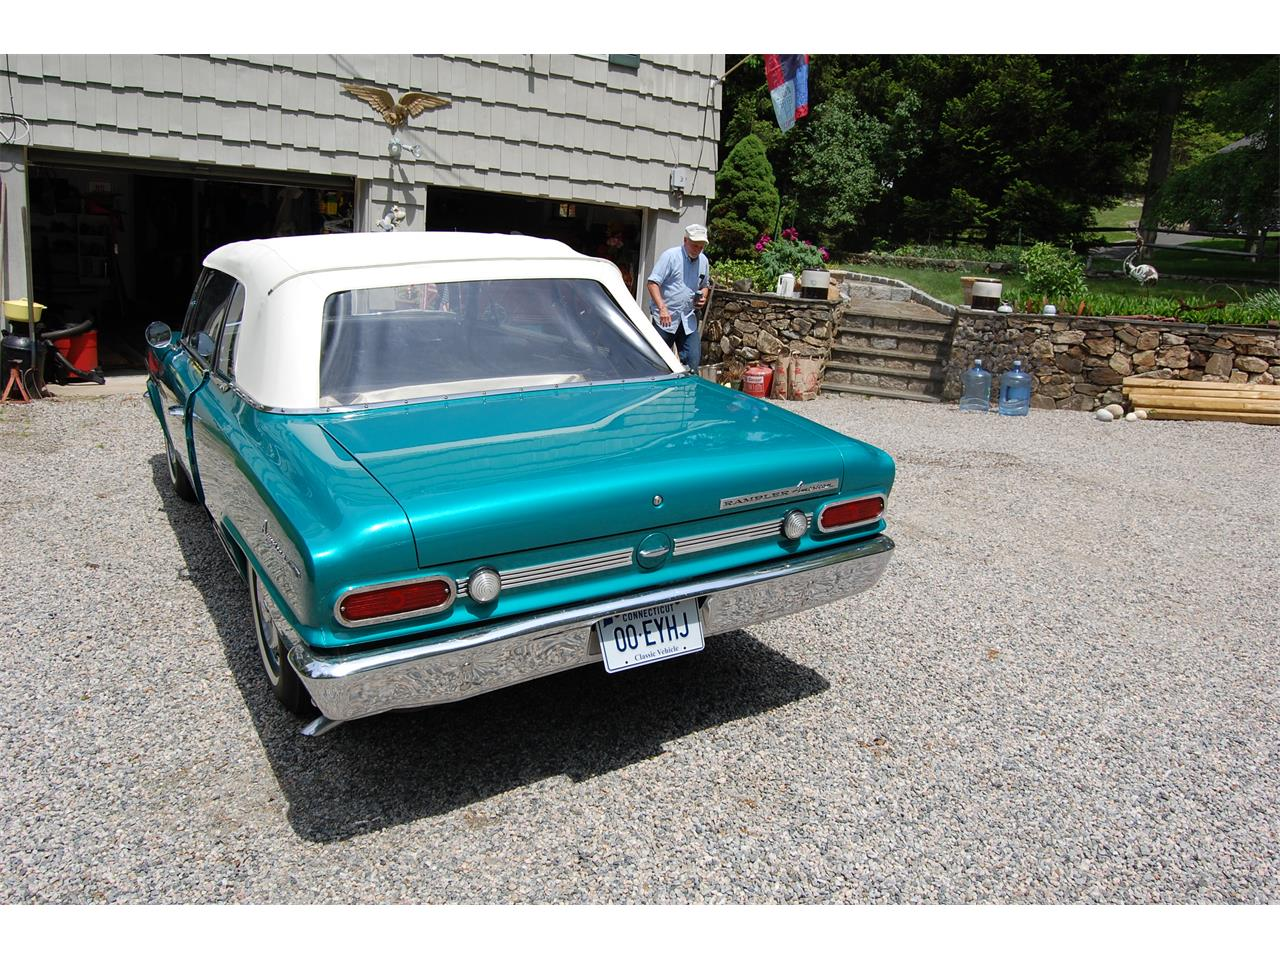 Large Picture of 1964 AMC Rambler located in Ridgefield Connecticut - $10,900.00 Offered by a Private Seller - NIN4